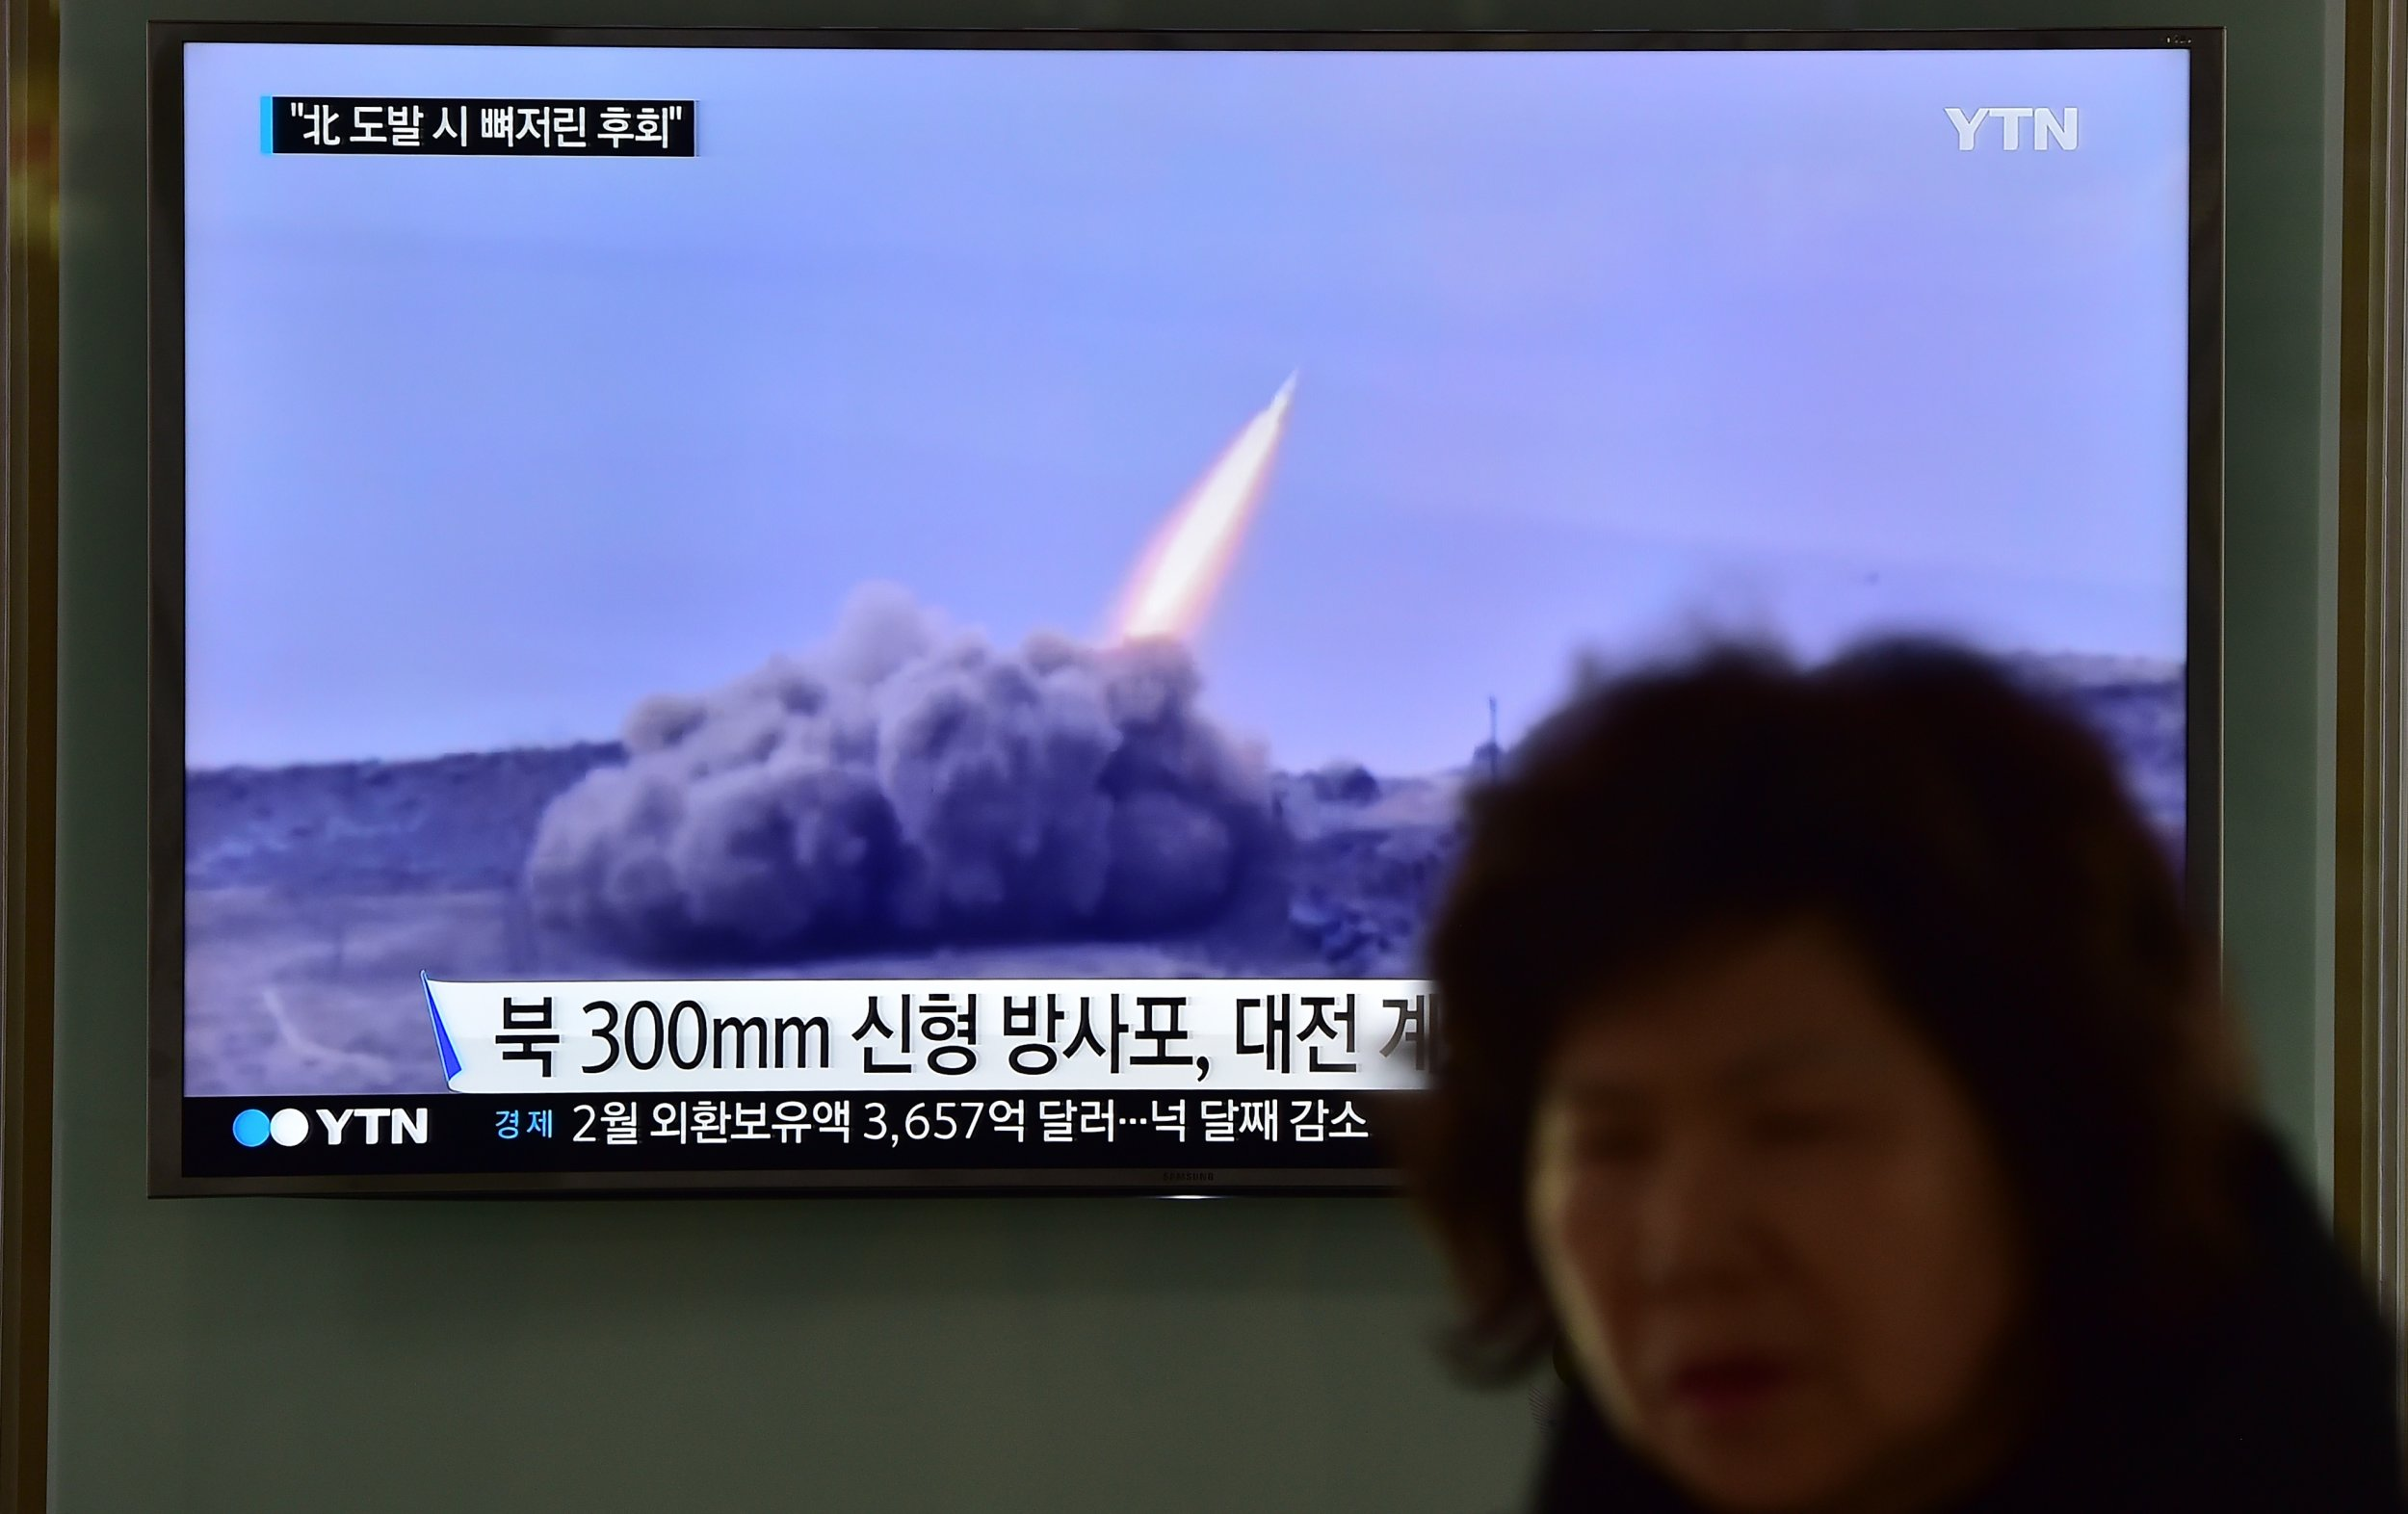 North Korea missile test.